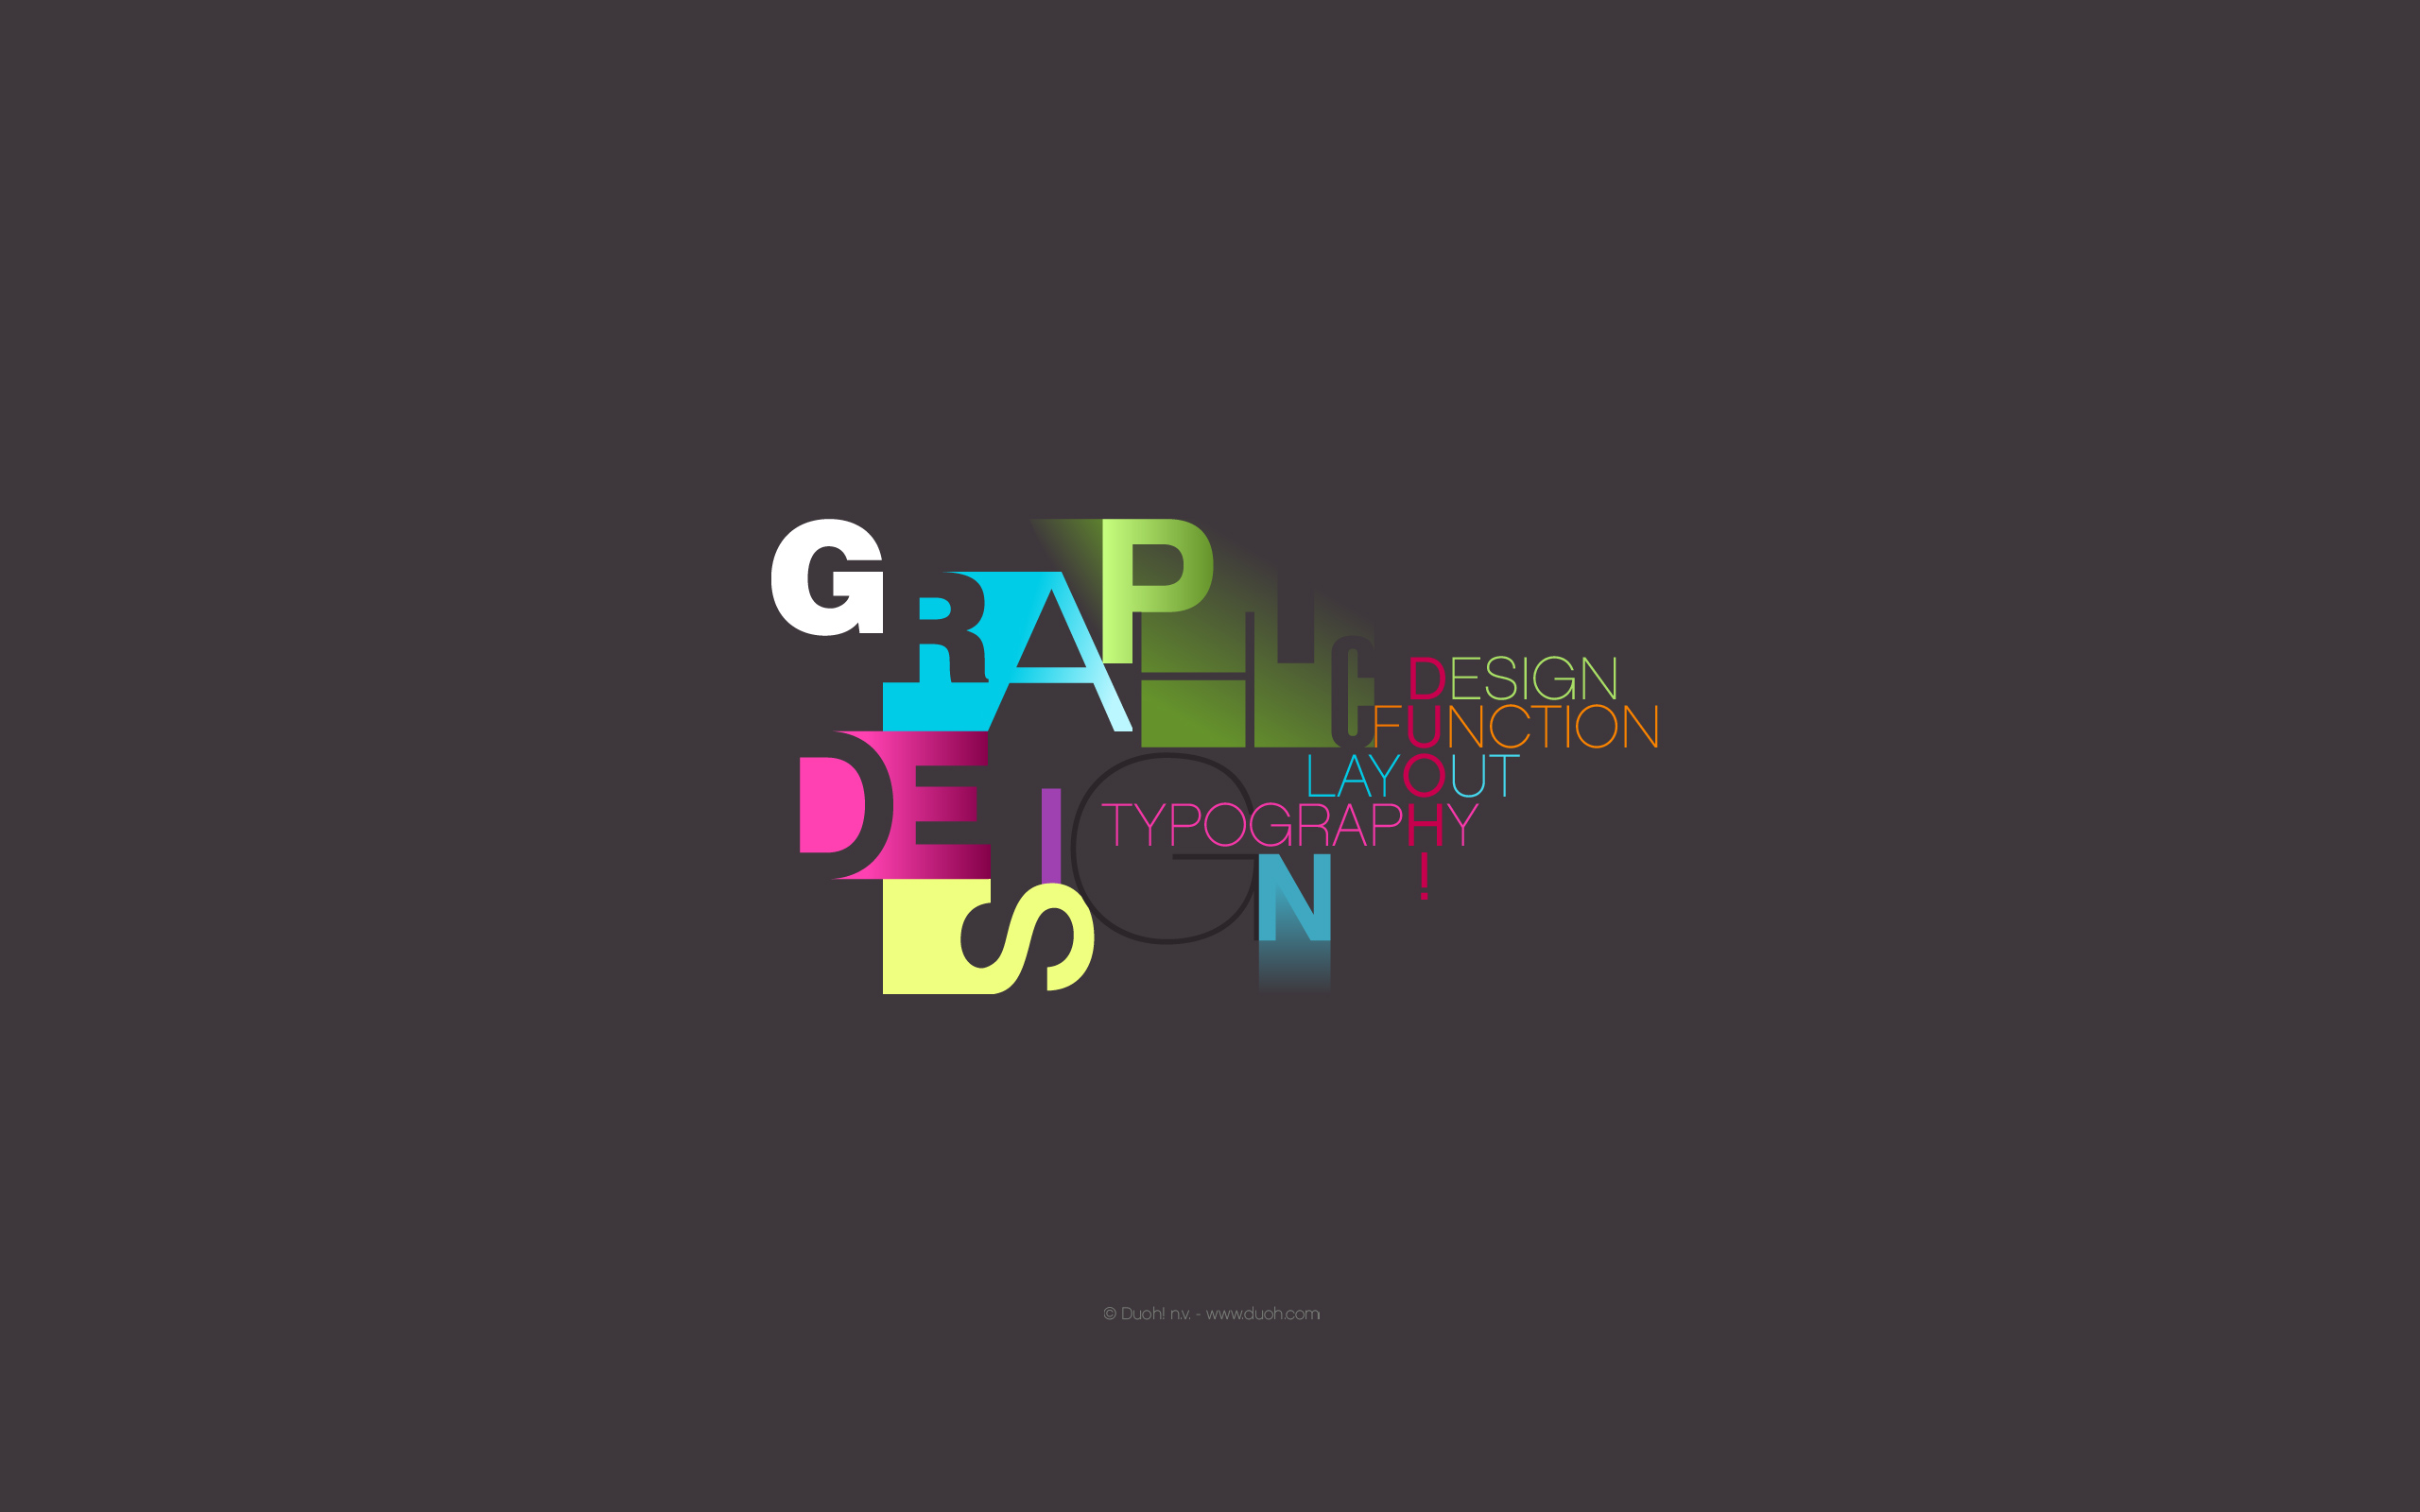 Wallpapers Graphic Design Cool Graphic Designs Invoice 2560x1600